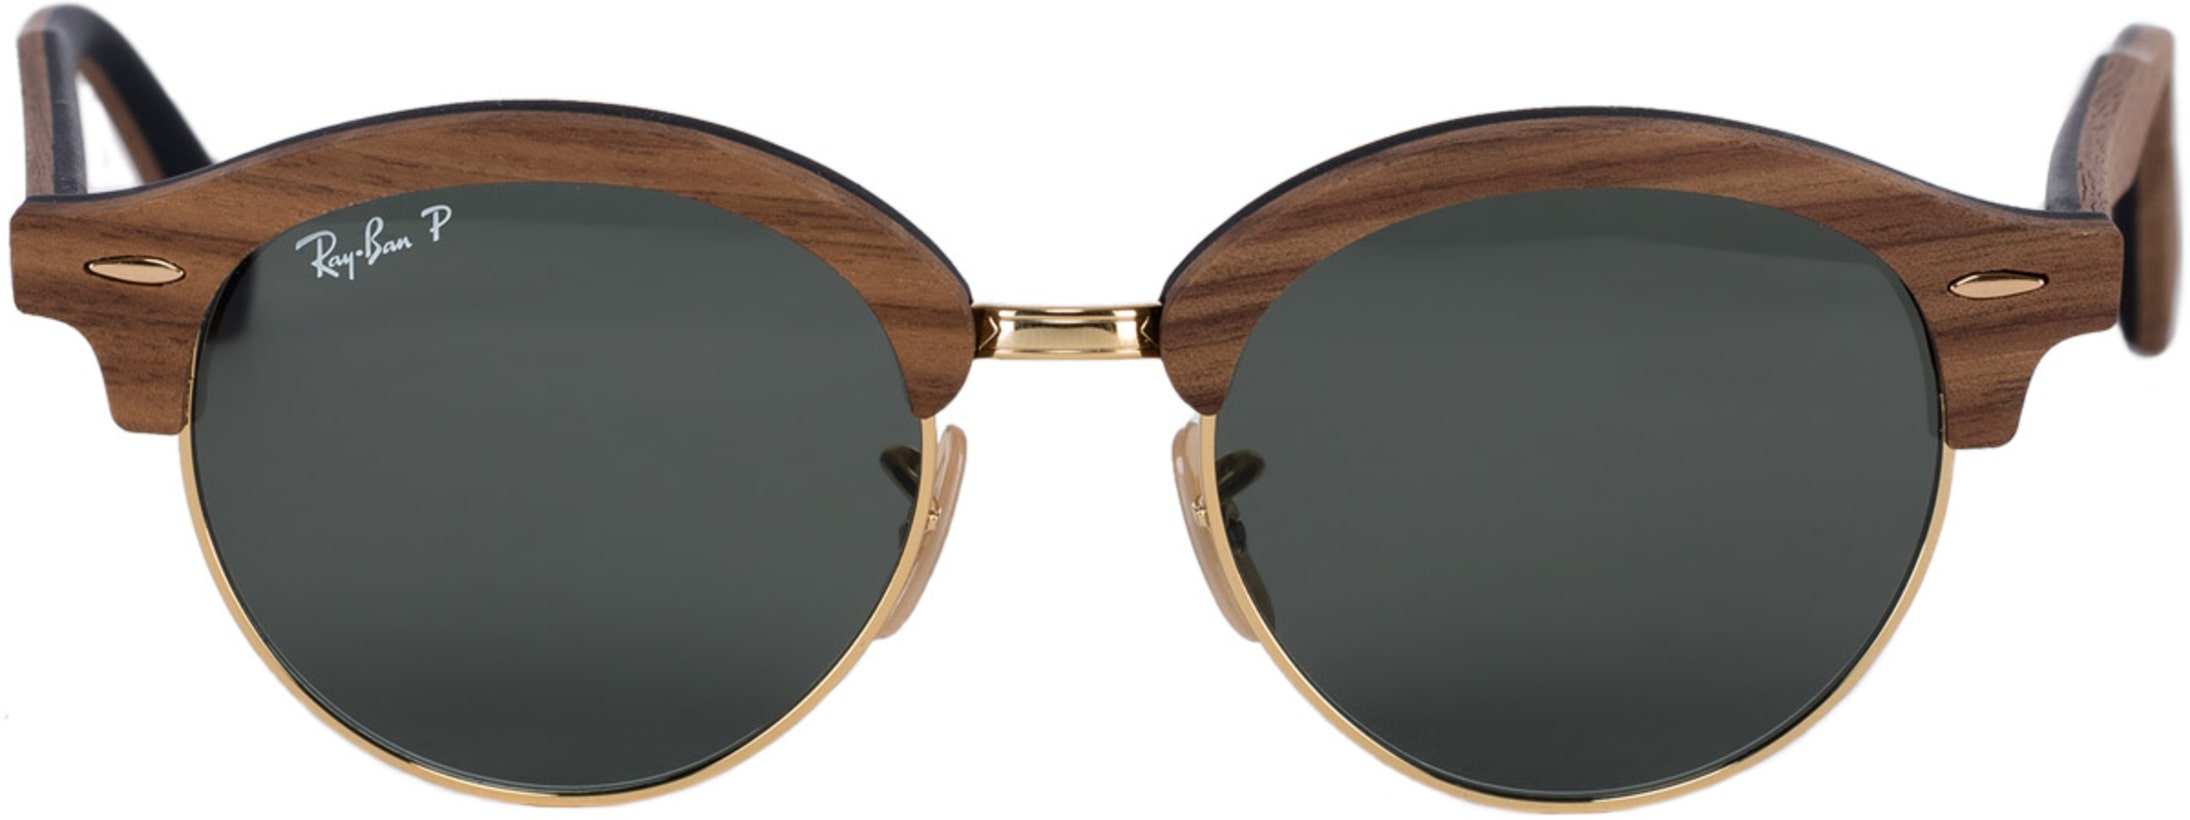 783b06d520d Ray-Ban  Clubround Wood Sunglasses - Brown Green Classic G-15 ...